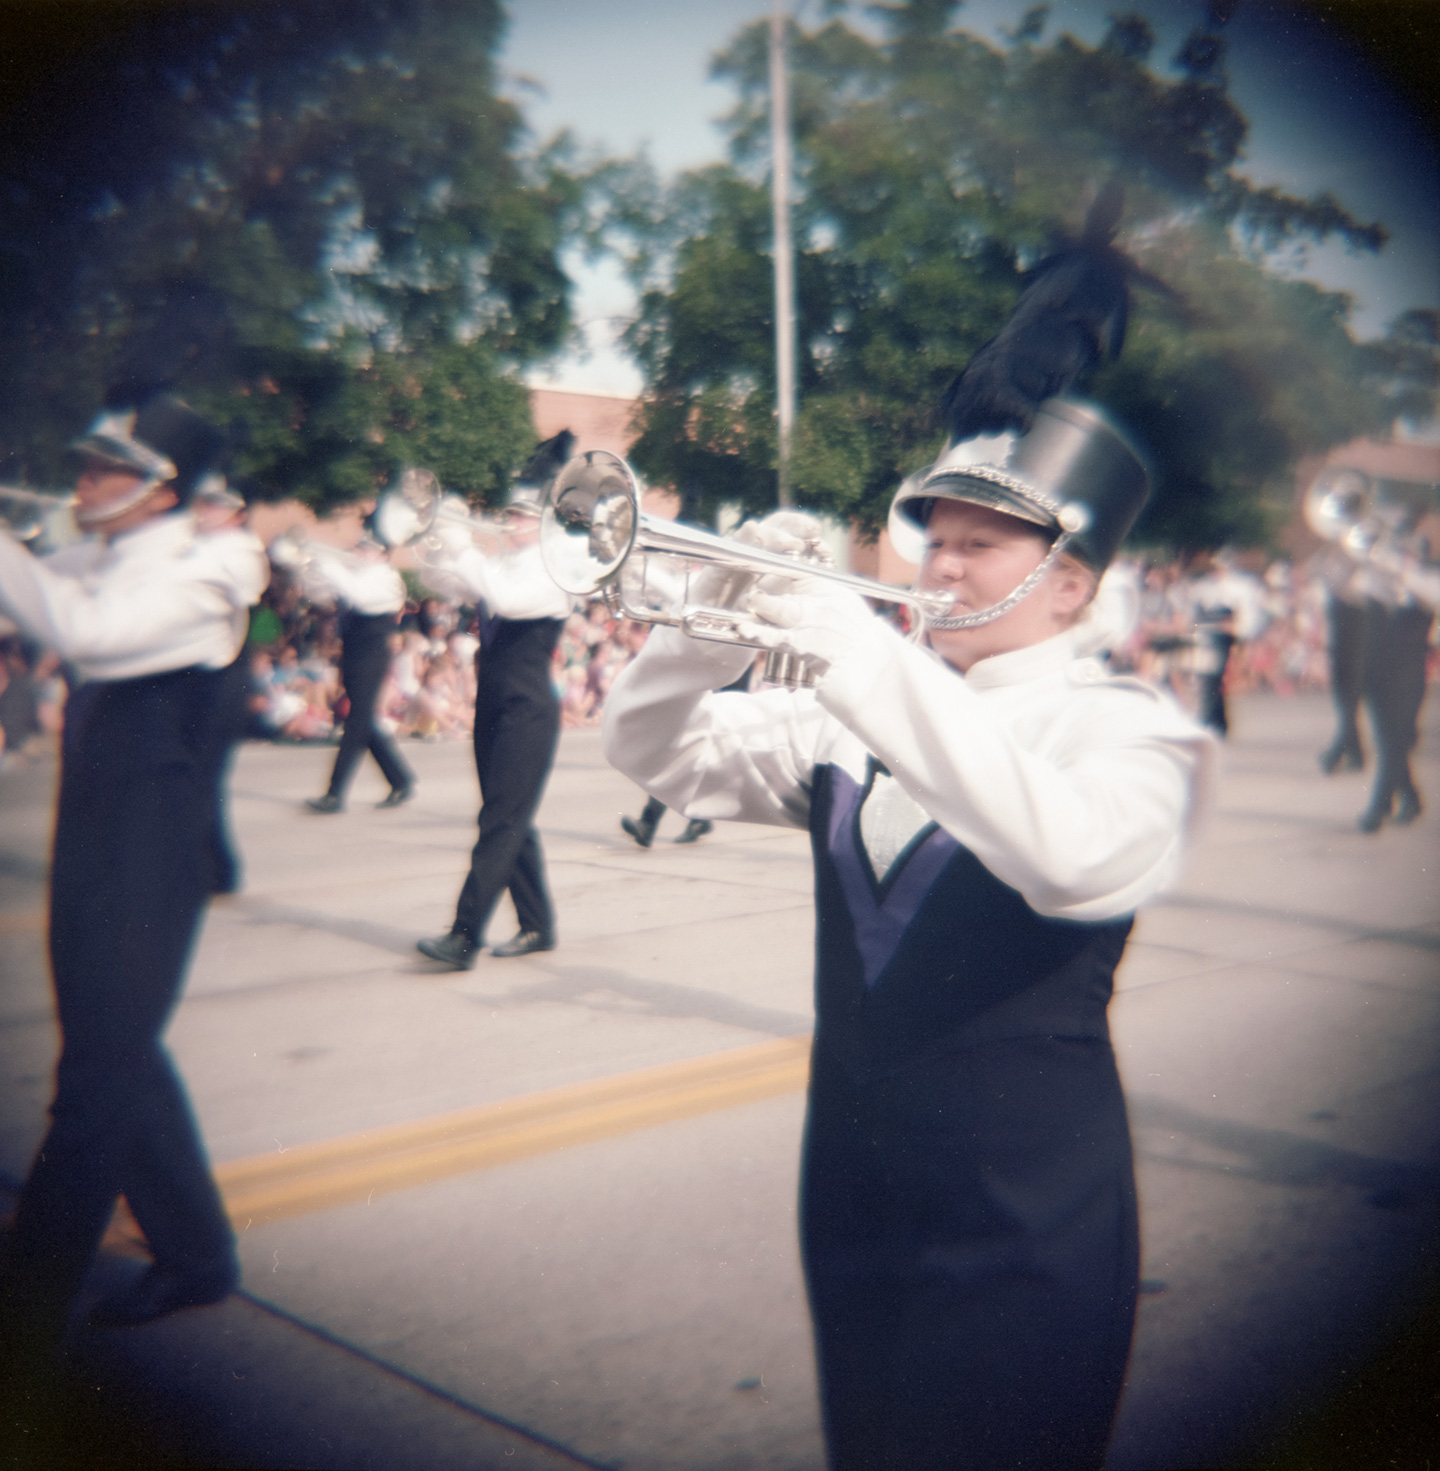 A marching band is caught on my Diana+ camera